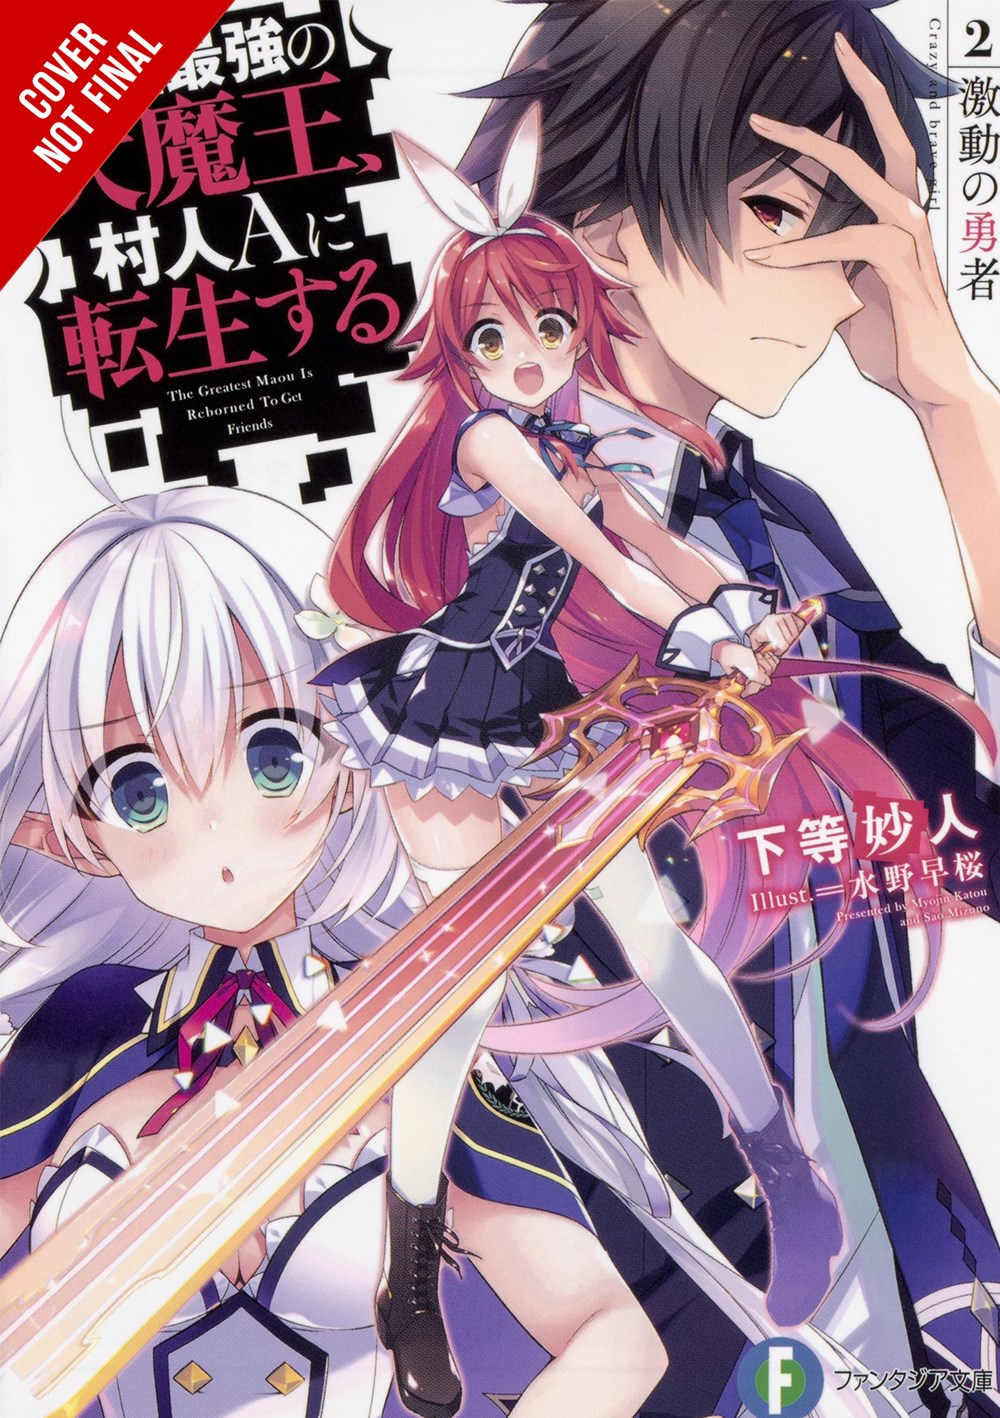 The Greatest Demon Lord Is Reborn as a Typical Nobody Novel Volume 2